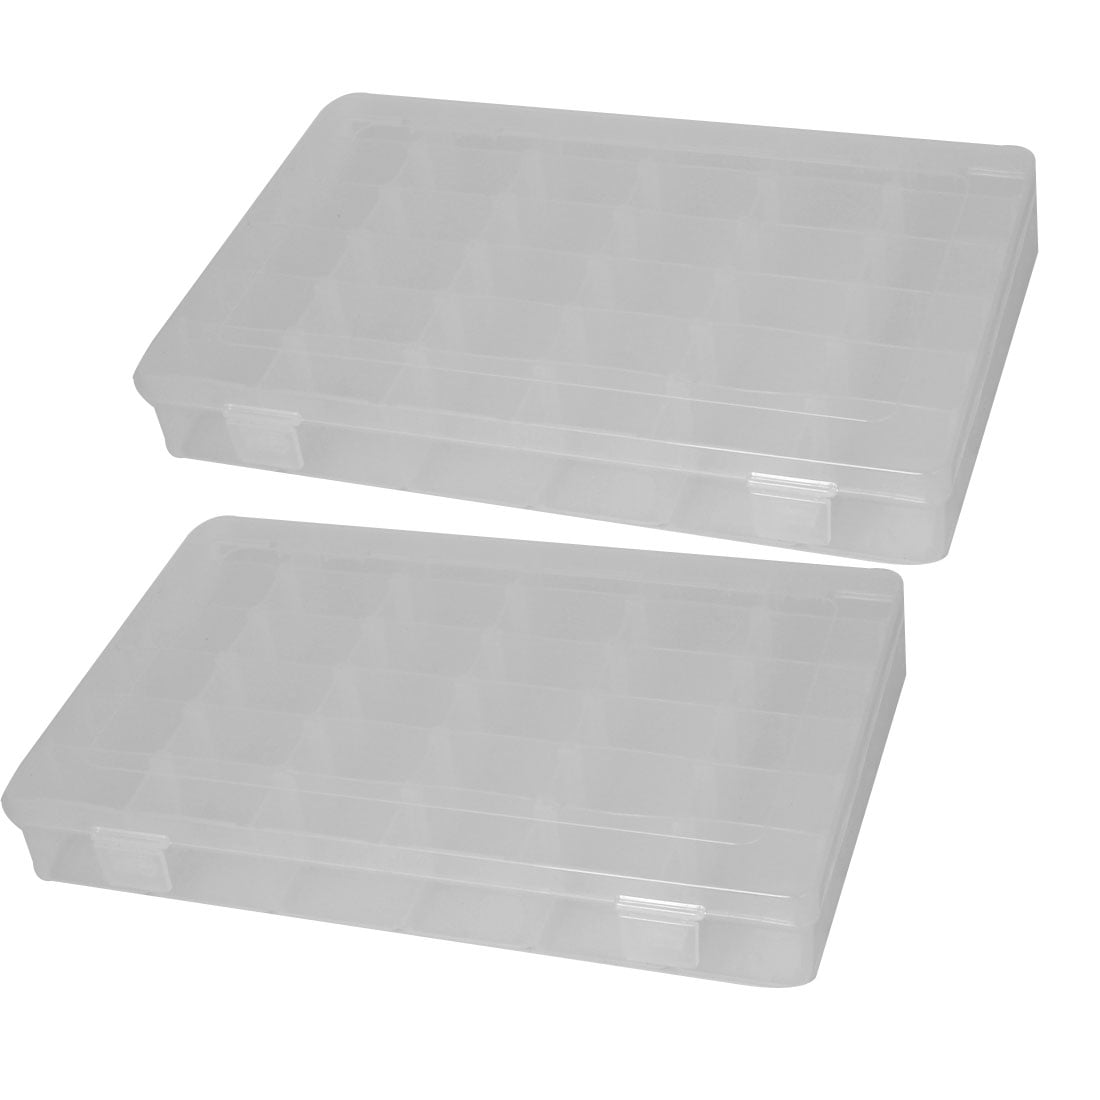 Click here to buy Plastic Case 36 Compartments Fishing Lure Bait Storage Angling Tackle Box 2PCS.